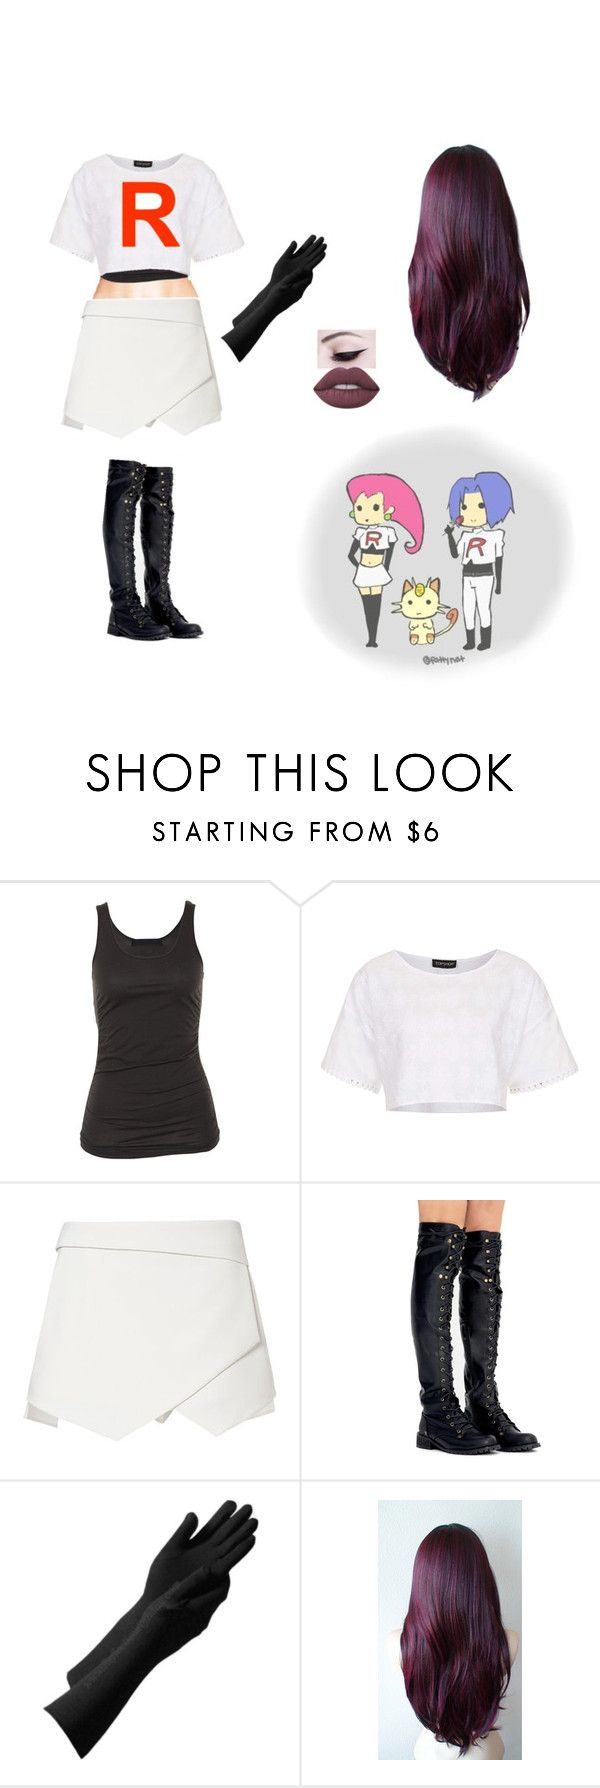 """""""Team Rocket inspired cosplay"""" by well-its-jess ❤ liked on Polyvore featuring Tusnelda Bloch, Topshop and Lime Crime"""